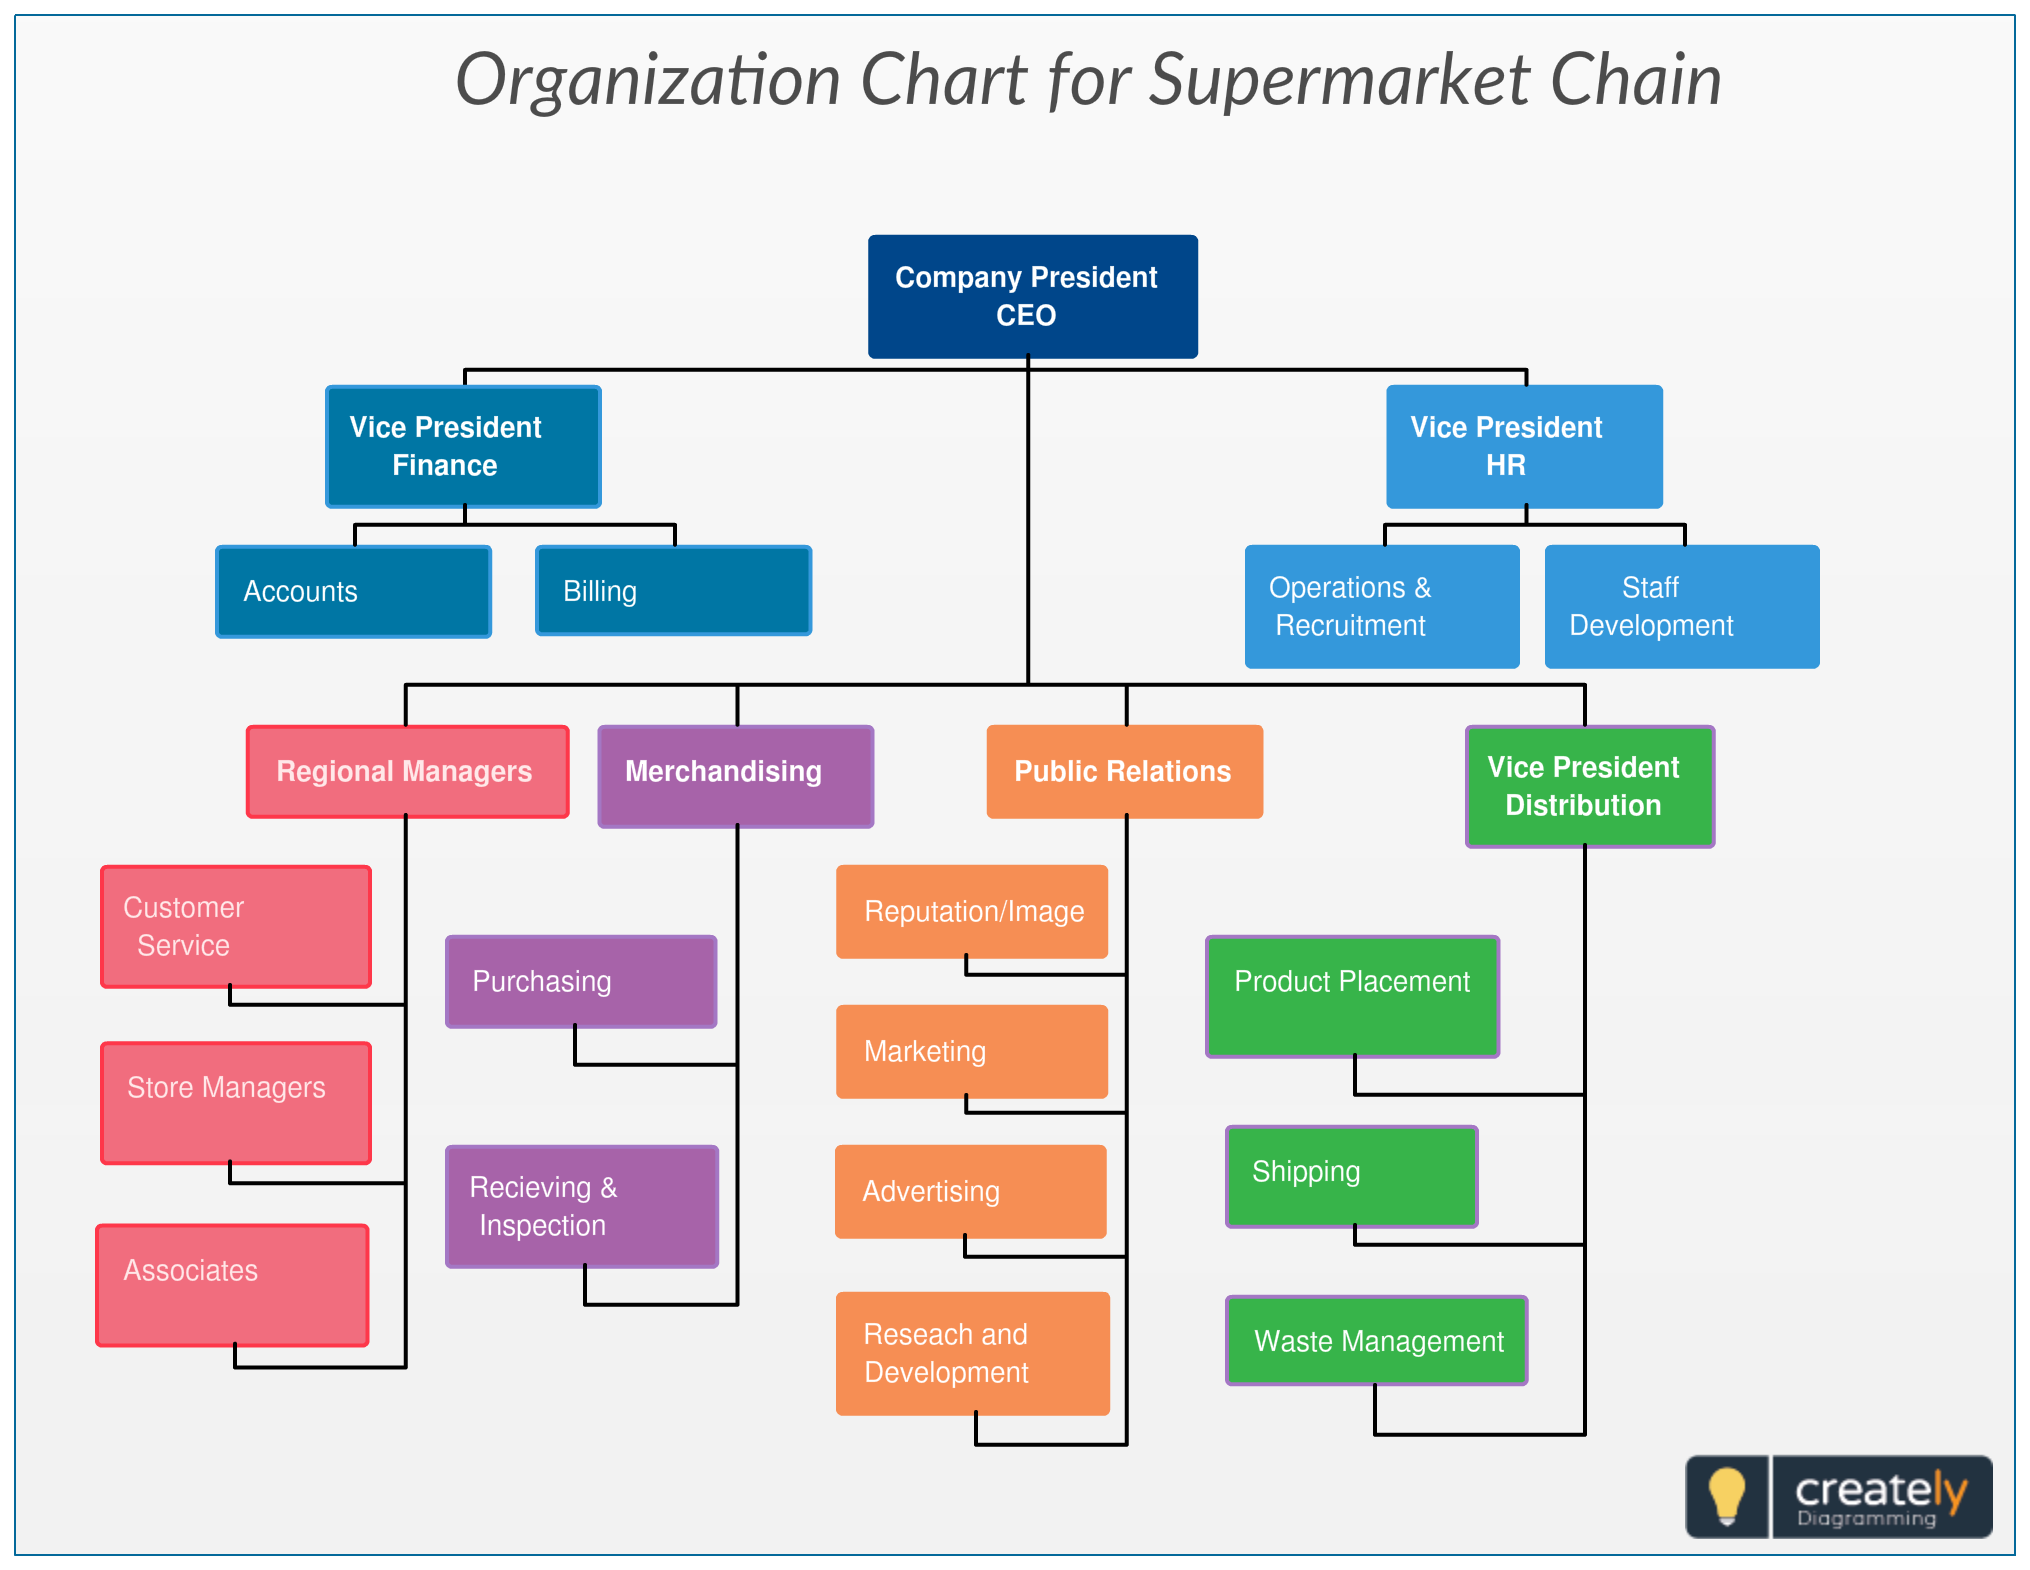 Organization Chart for Supermarket Chain typically shows a ...